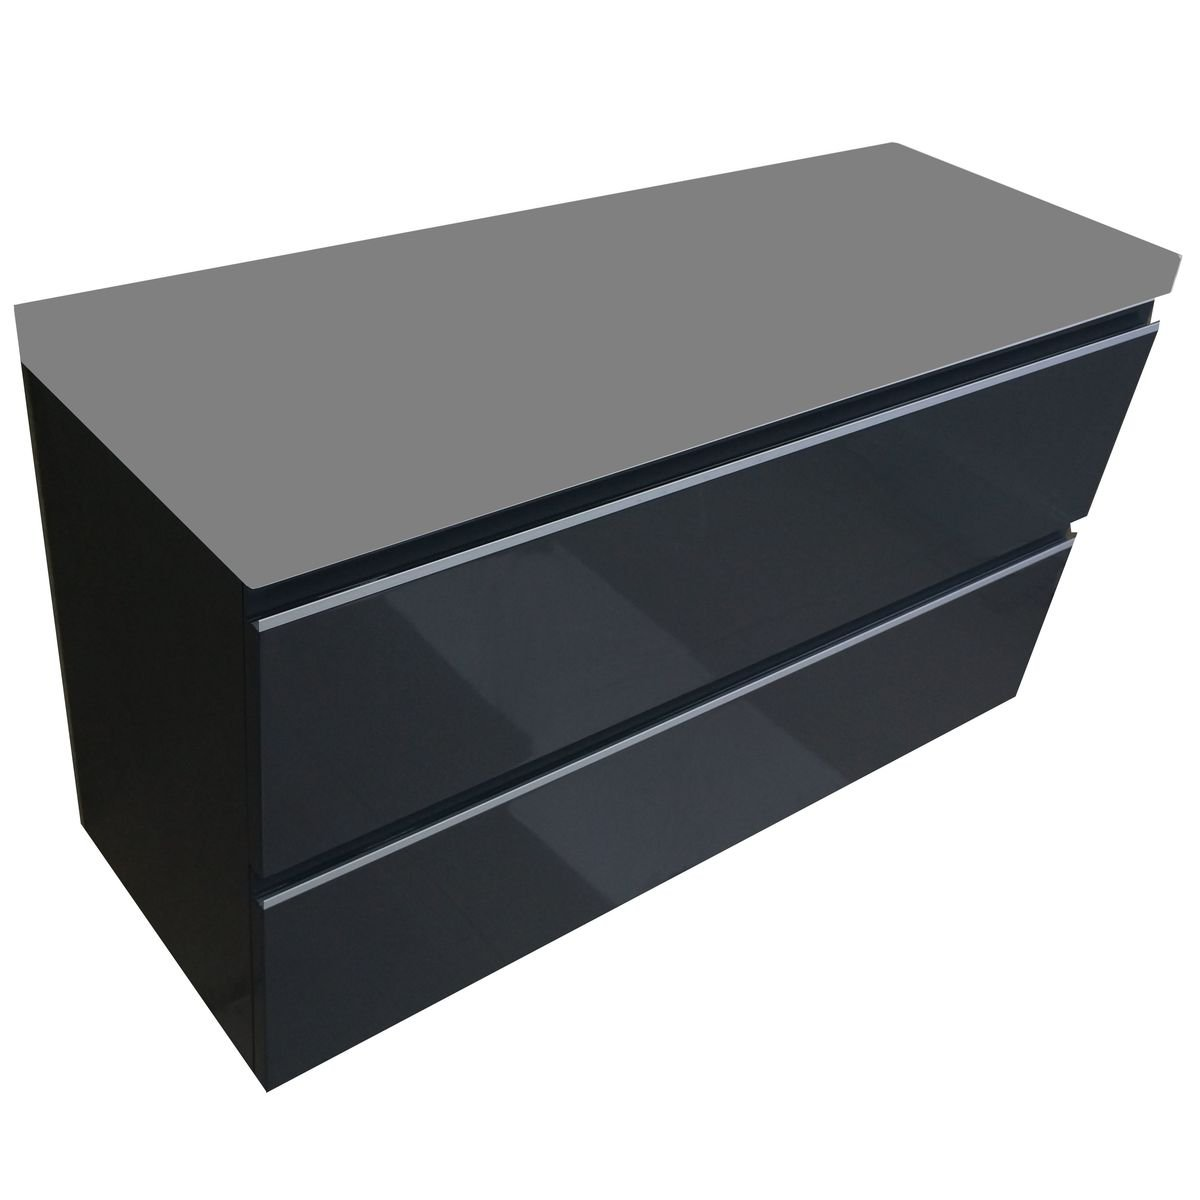 praya wiesbaden meuble sous lavabo 100x36cm sans lavabo gris brillant. Black Bedroom Furniture Sets. Home Design Ideas